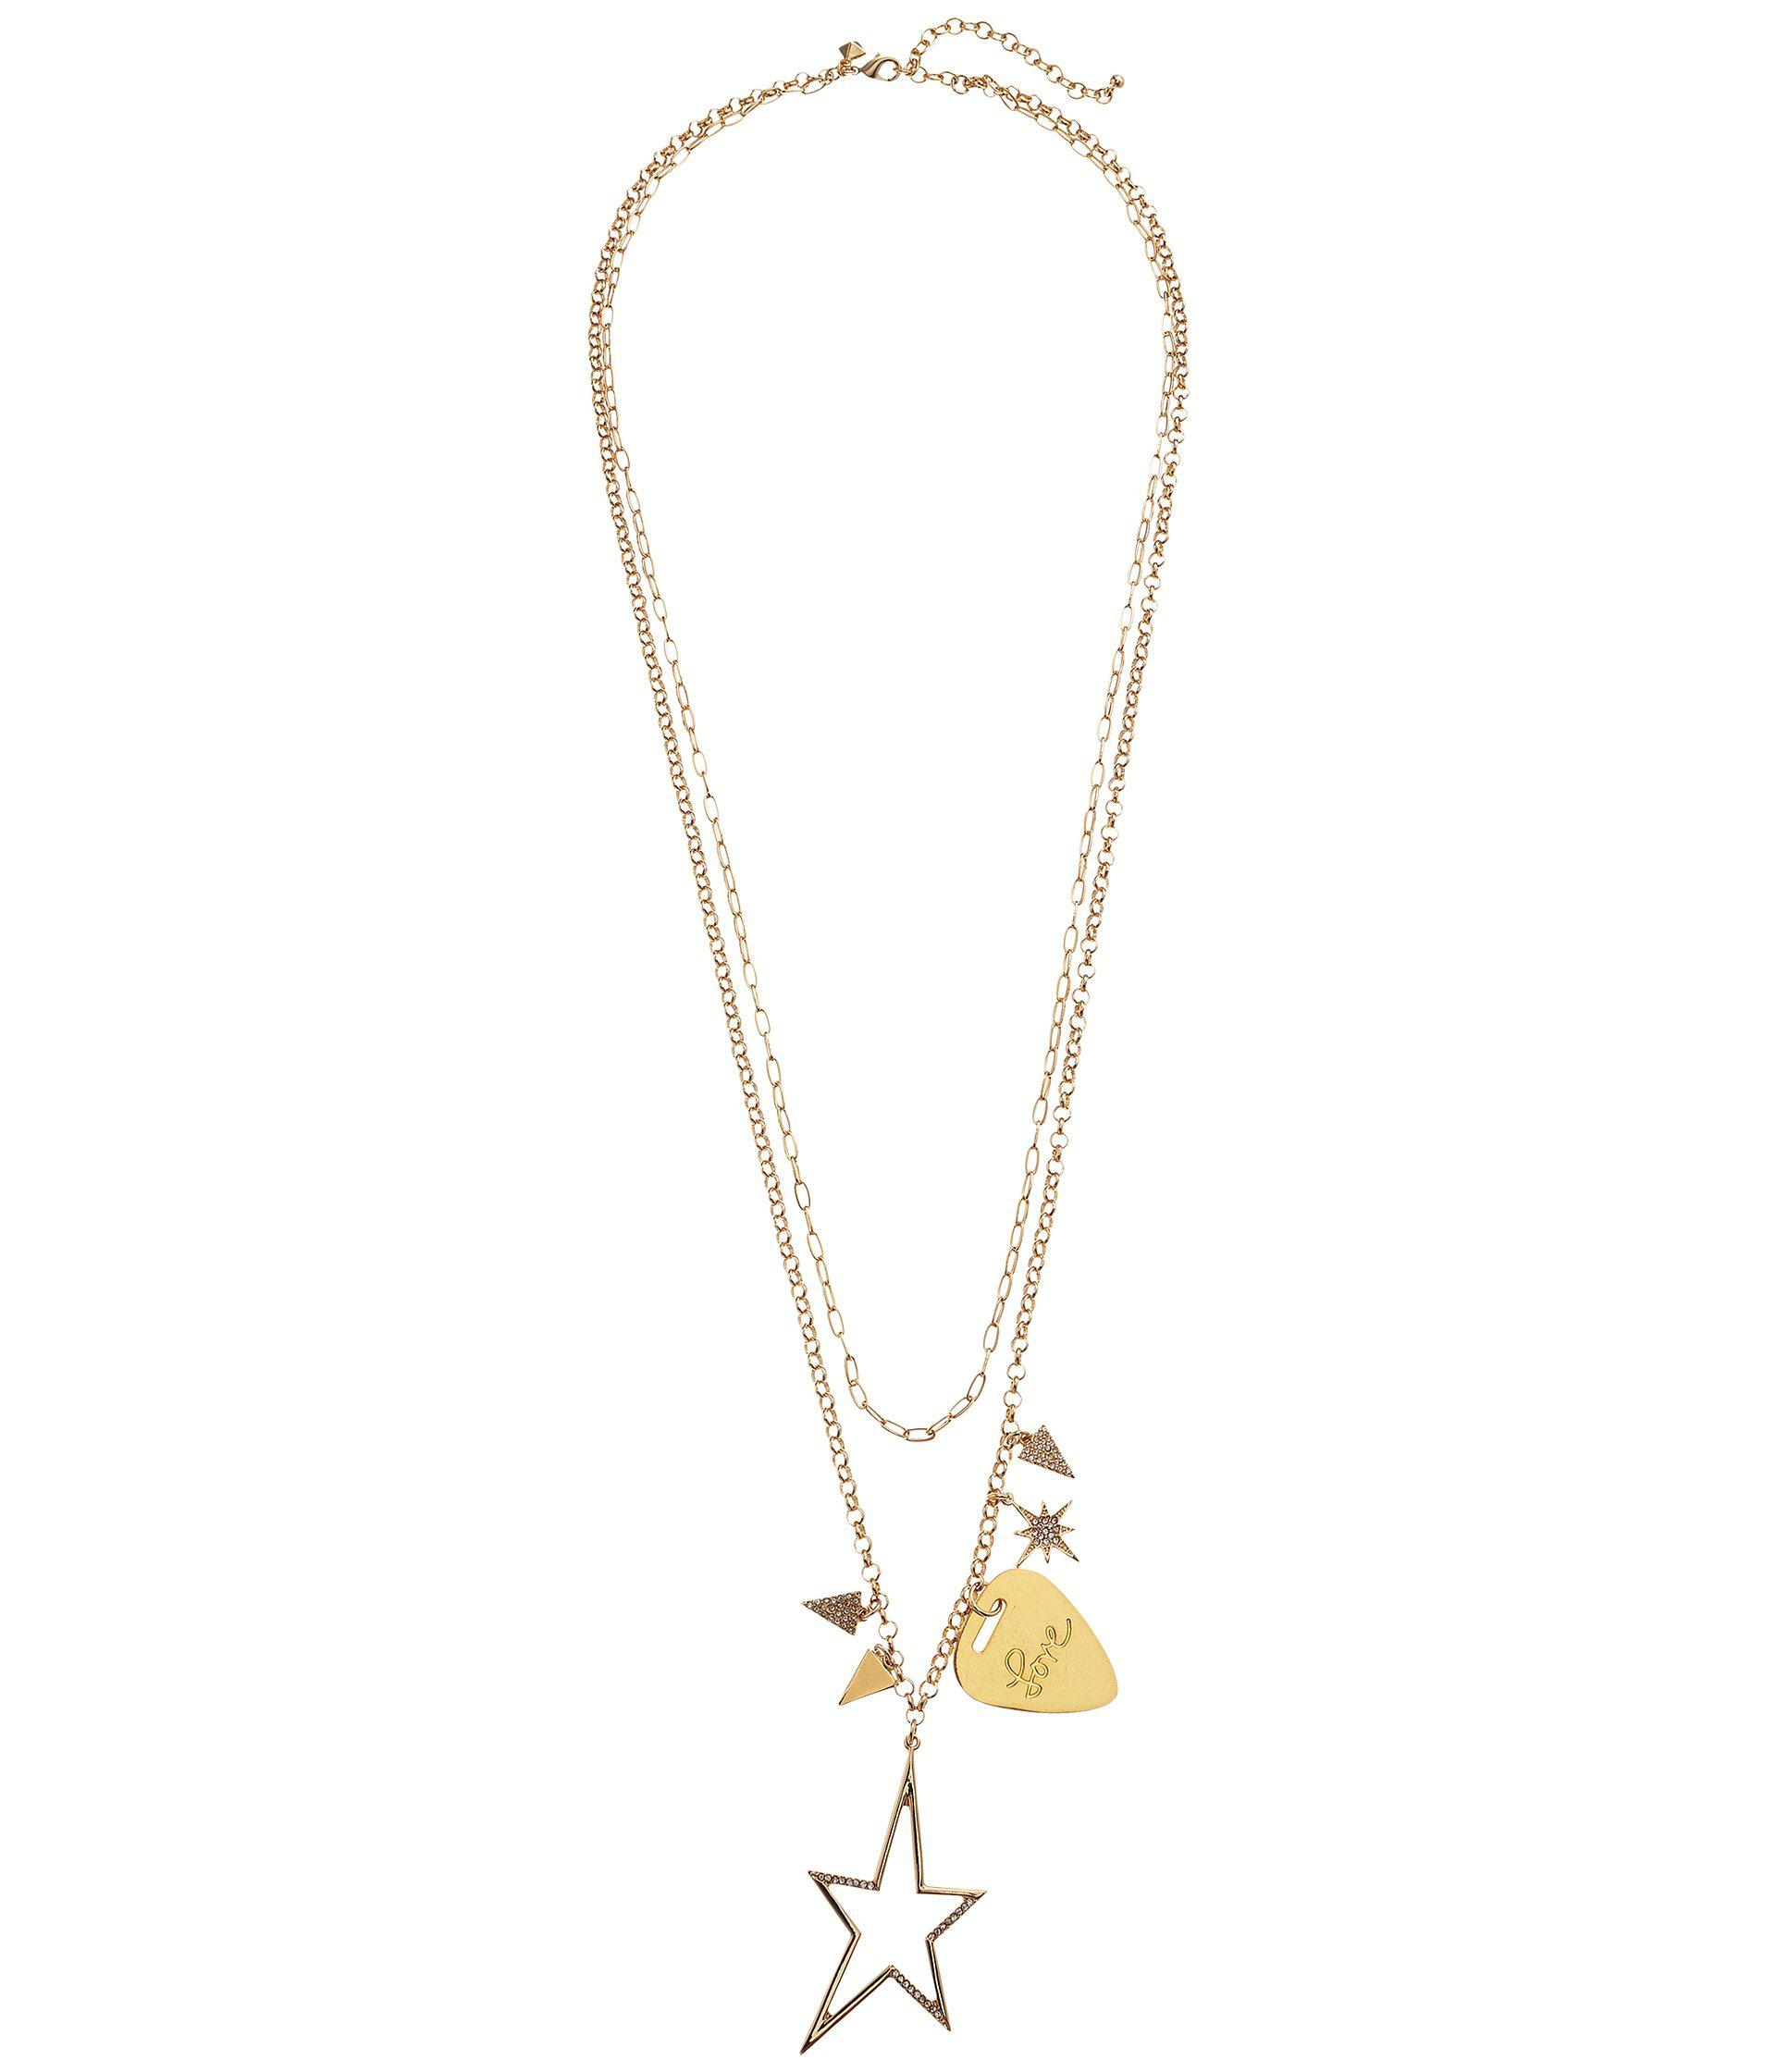 Lyst rebecca minkoff guitar pick charm cluster necklace in metallic rebecca minkoff womens metallic guitar pick charm cluster necklace aloadofball Image collections